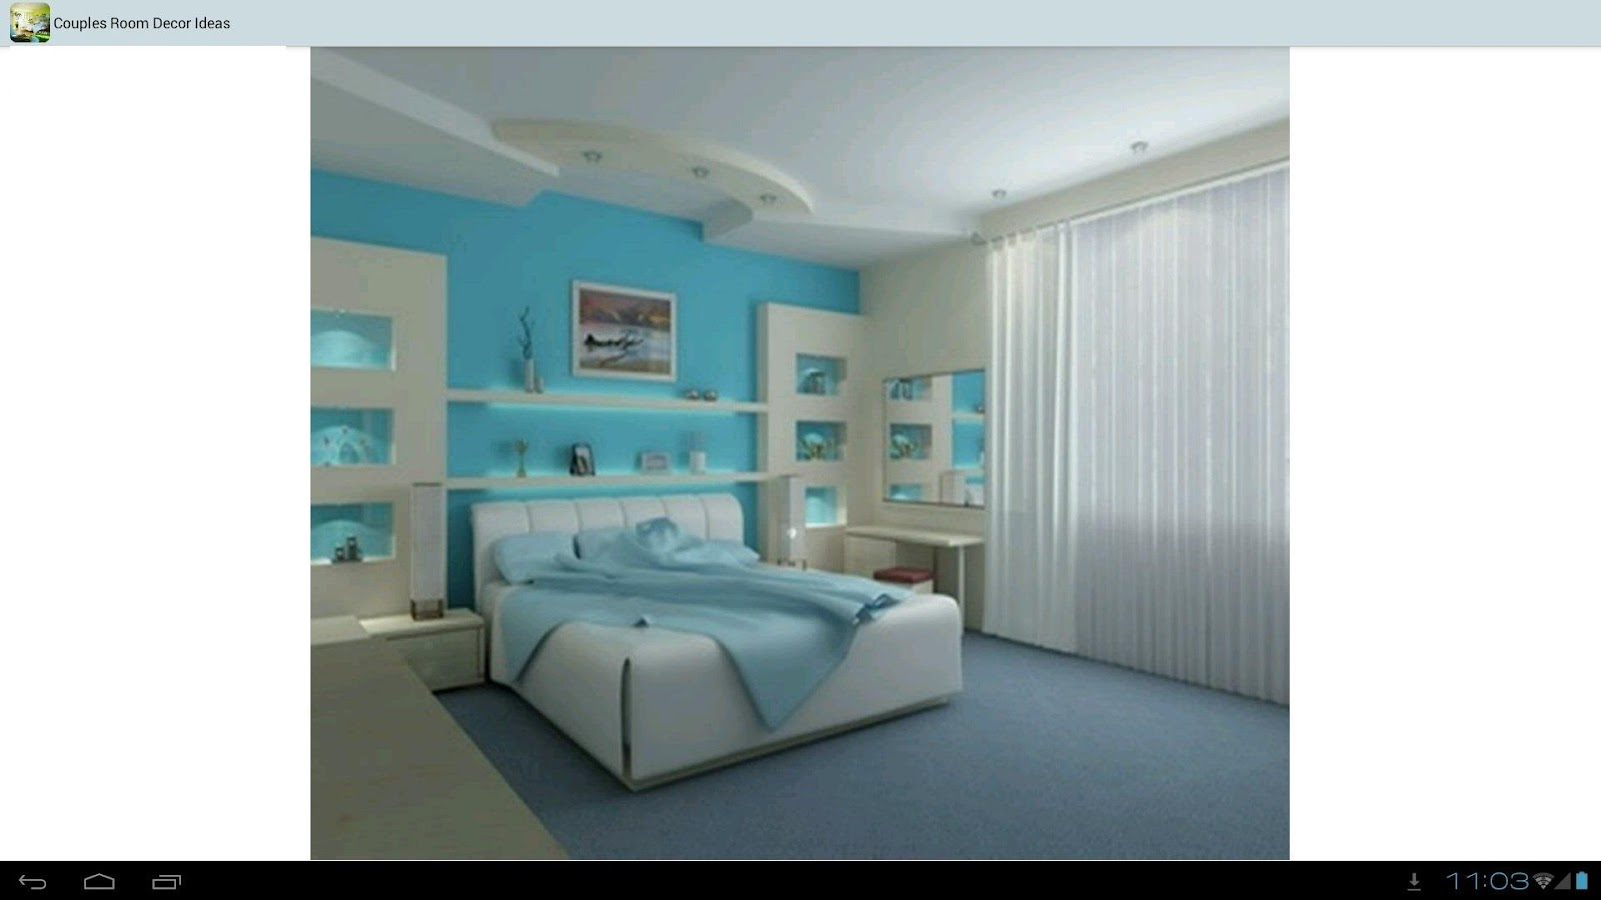 Couples room decor ideas android apps on google play for Room design ideas app